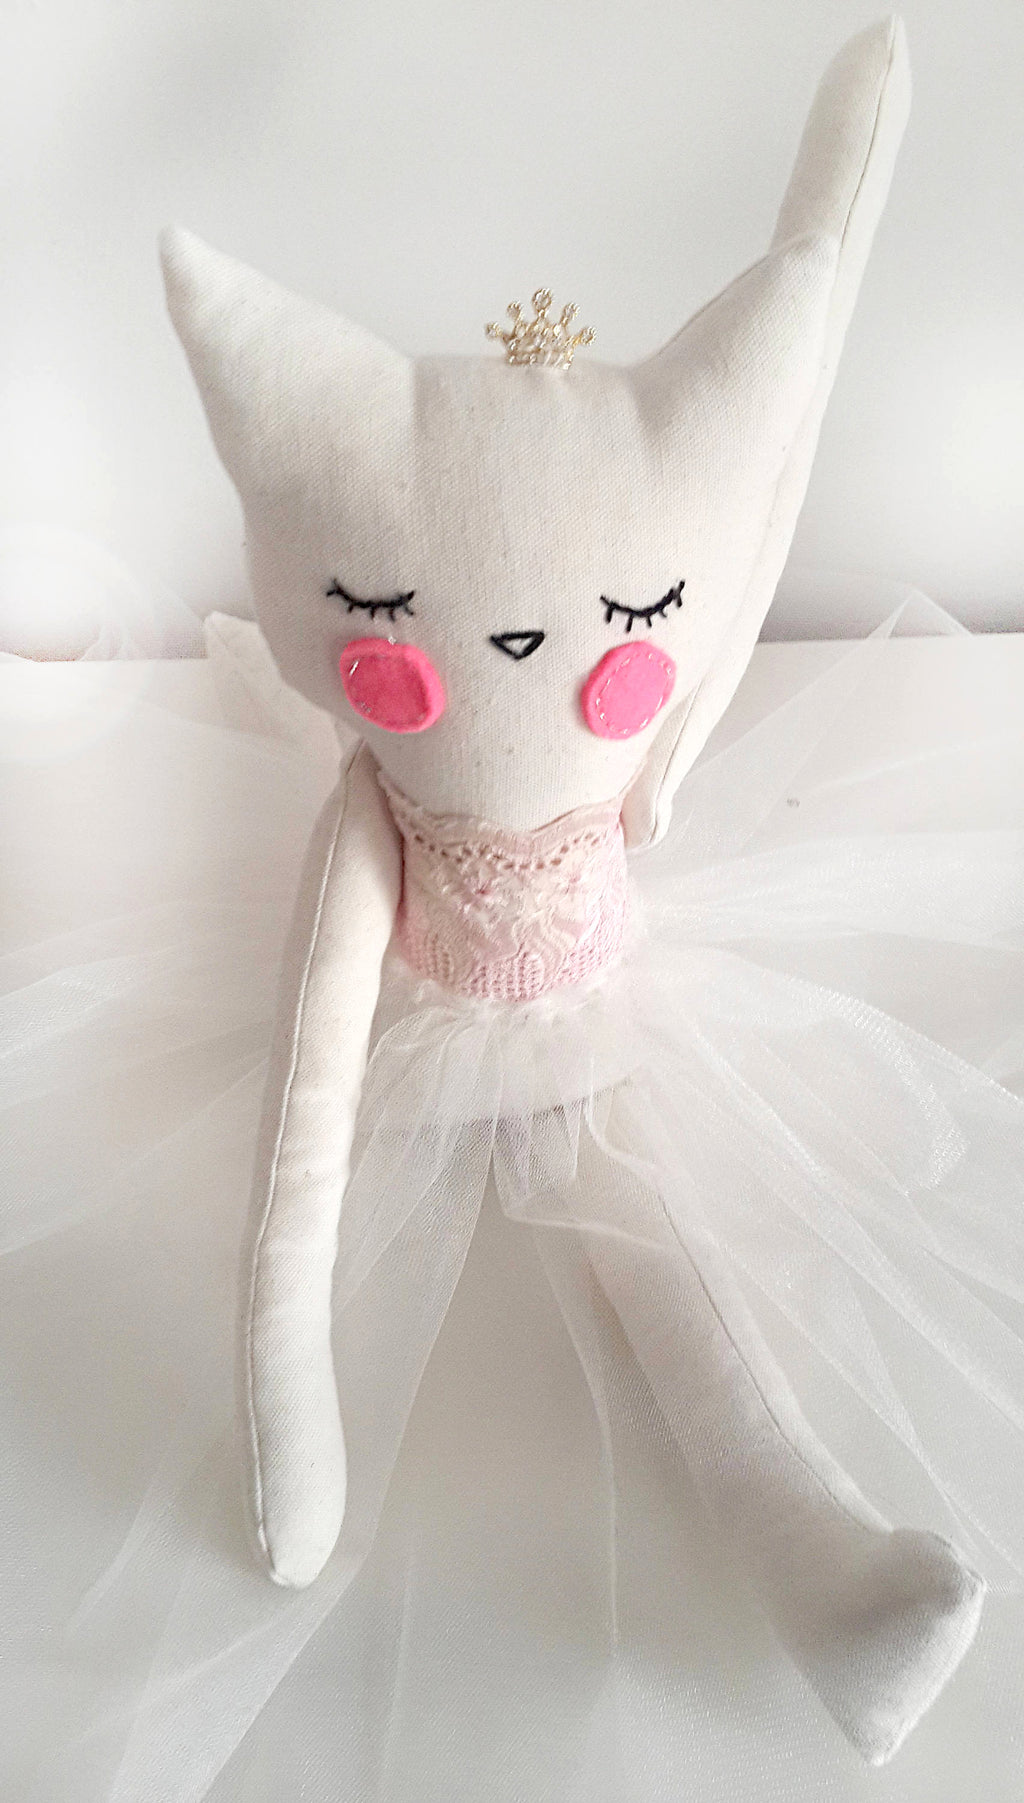 Handmade Plush Animal Doll nursery decor, Princess Kitty Ballerina - Babazen